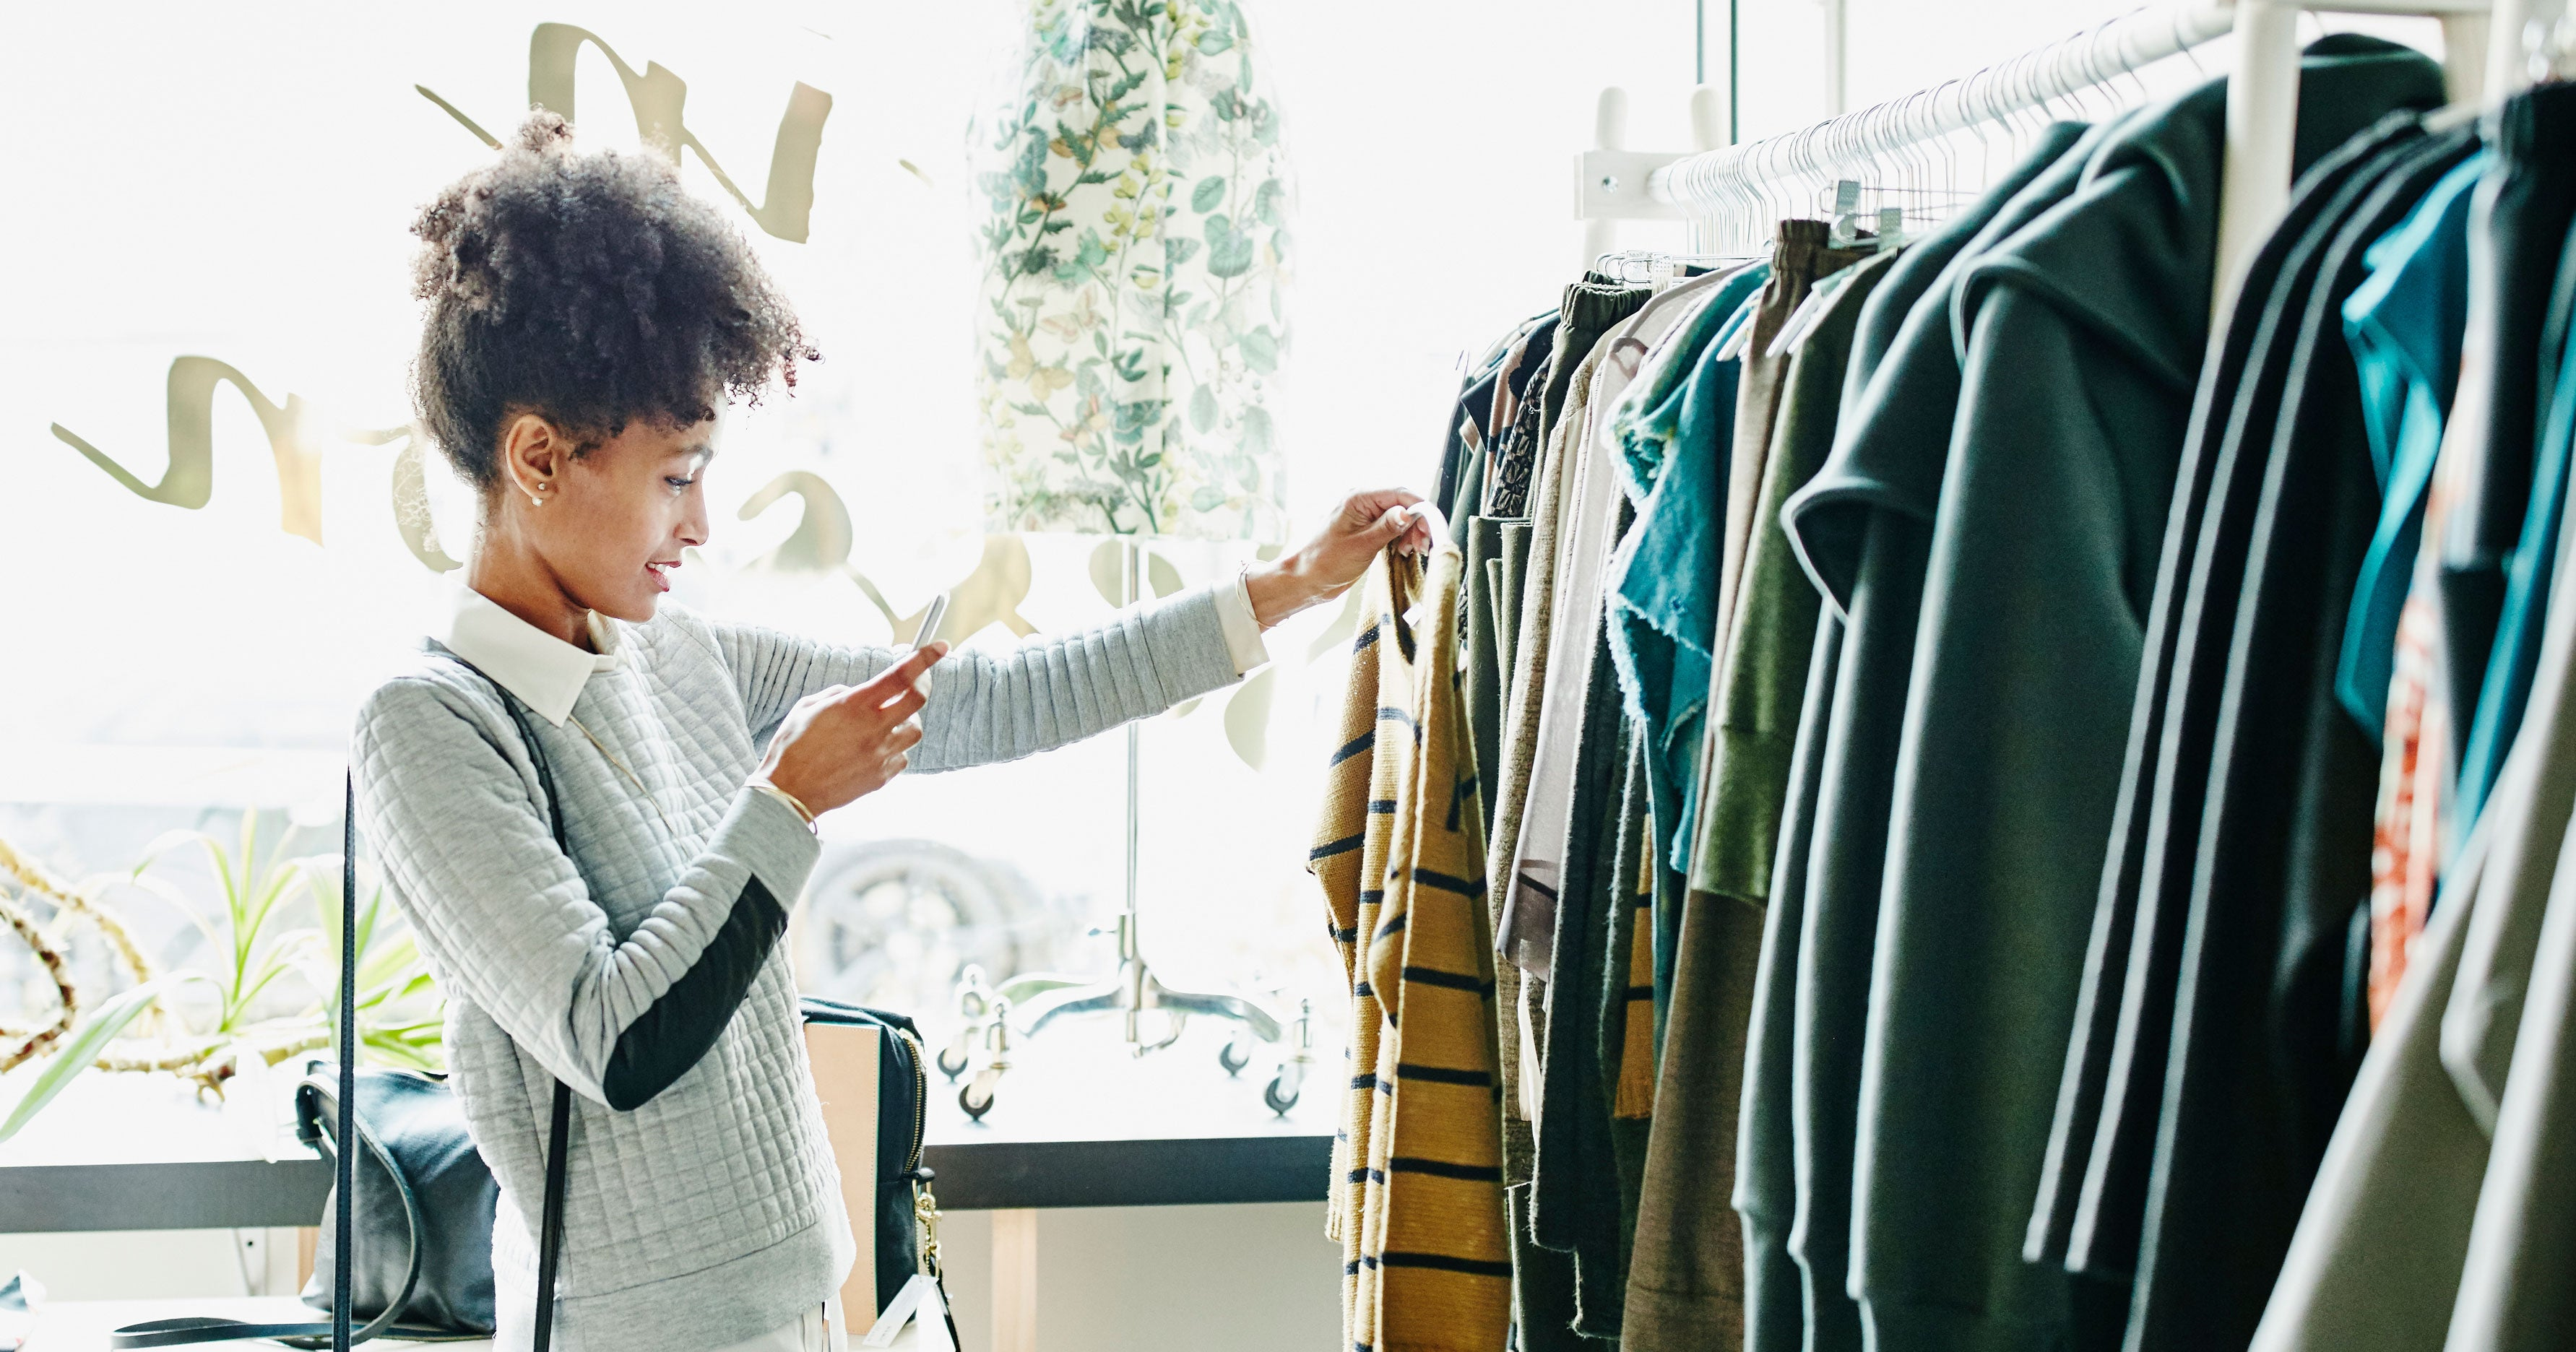 Small Fashion Businesses To Support During Coronavirus